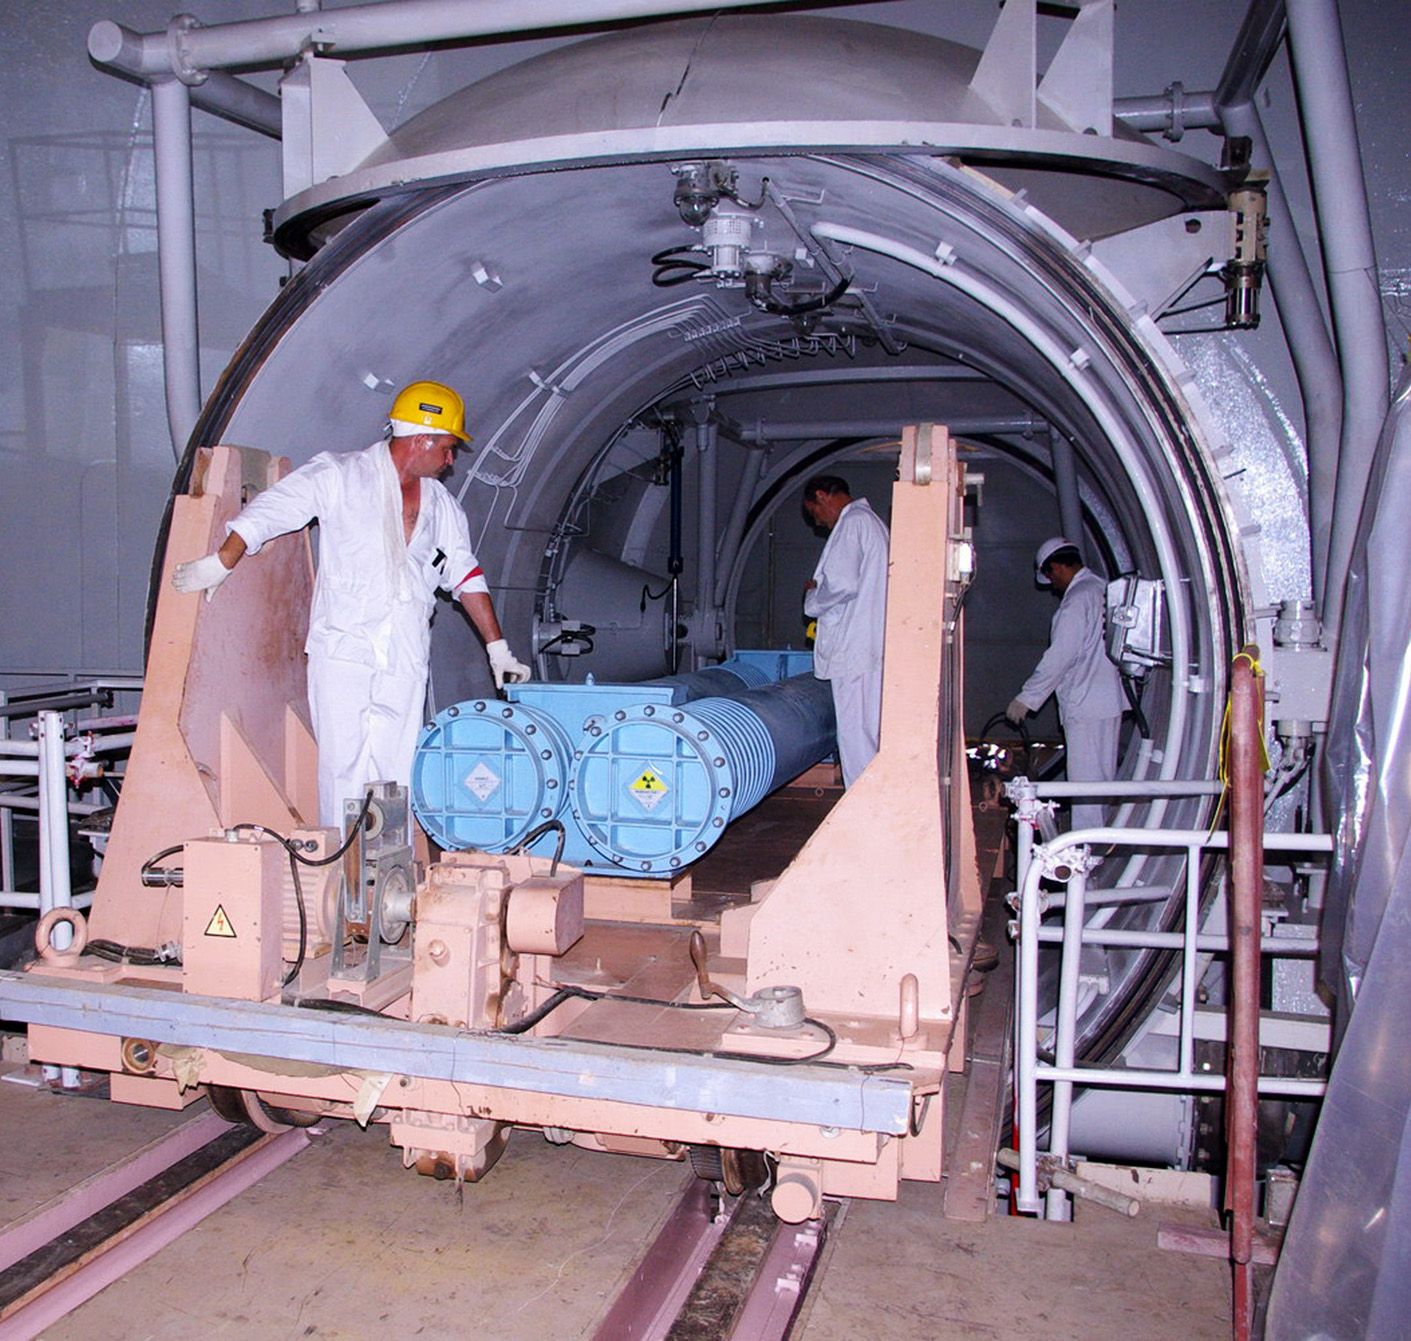 Workers load nuclear fuel in the reactor building at Iran's Bushehr nuclear power plant in 2010. Iran may buy two new power reactors from Russia, possibly helping Tehran to argue that it needs more fuel-production systems.